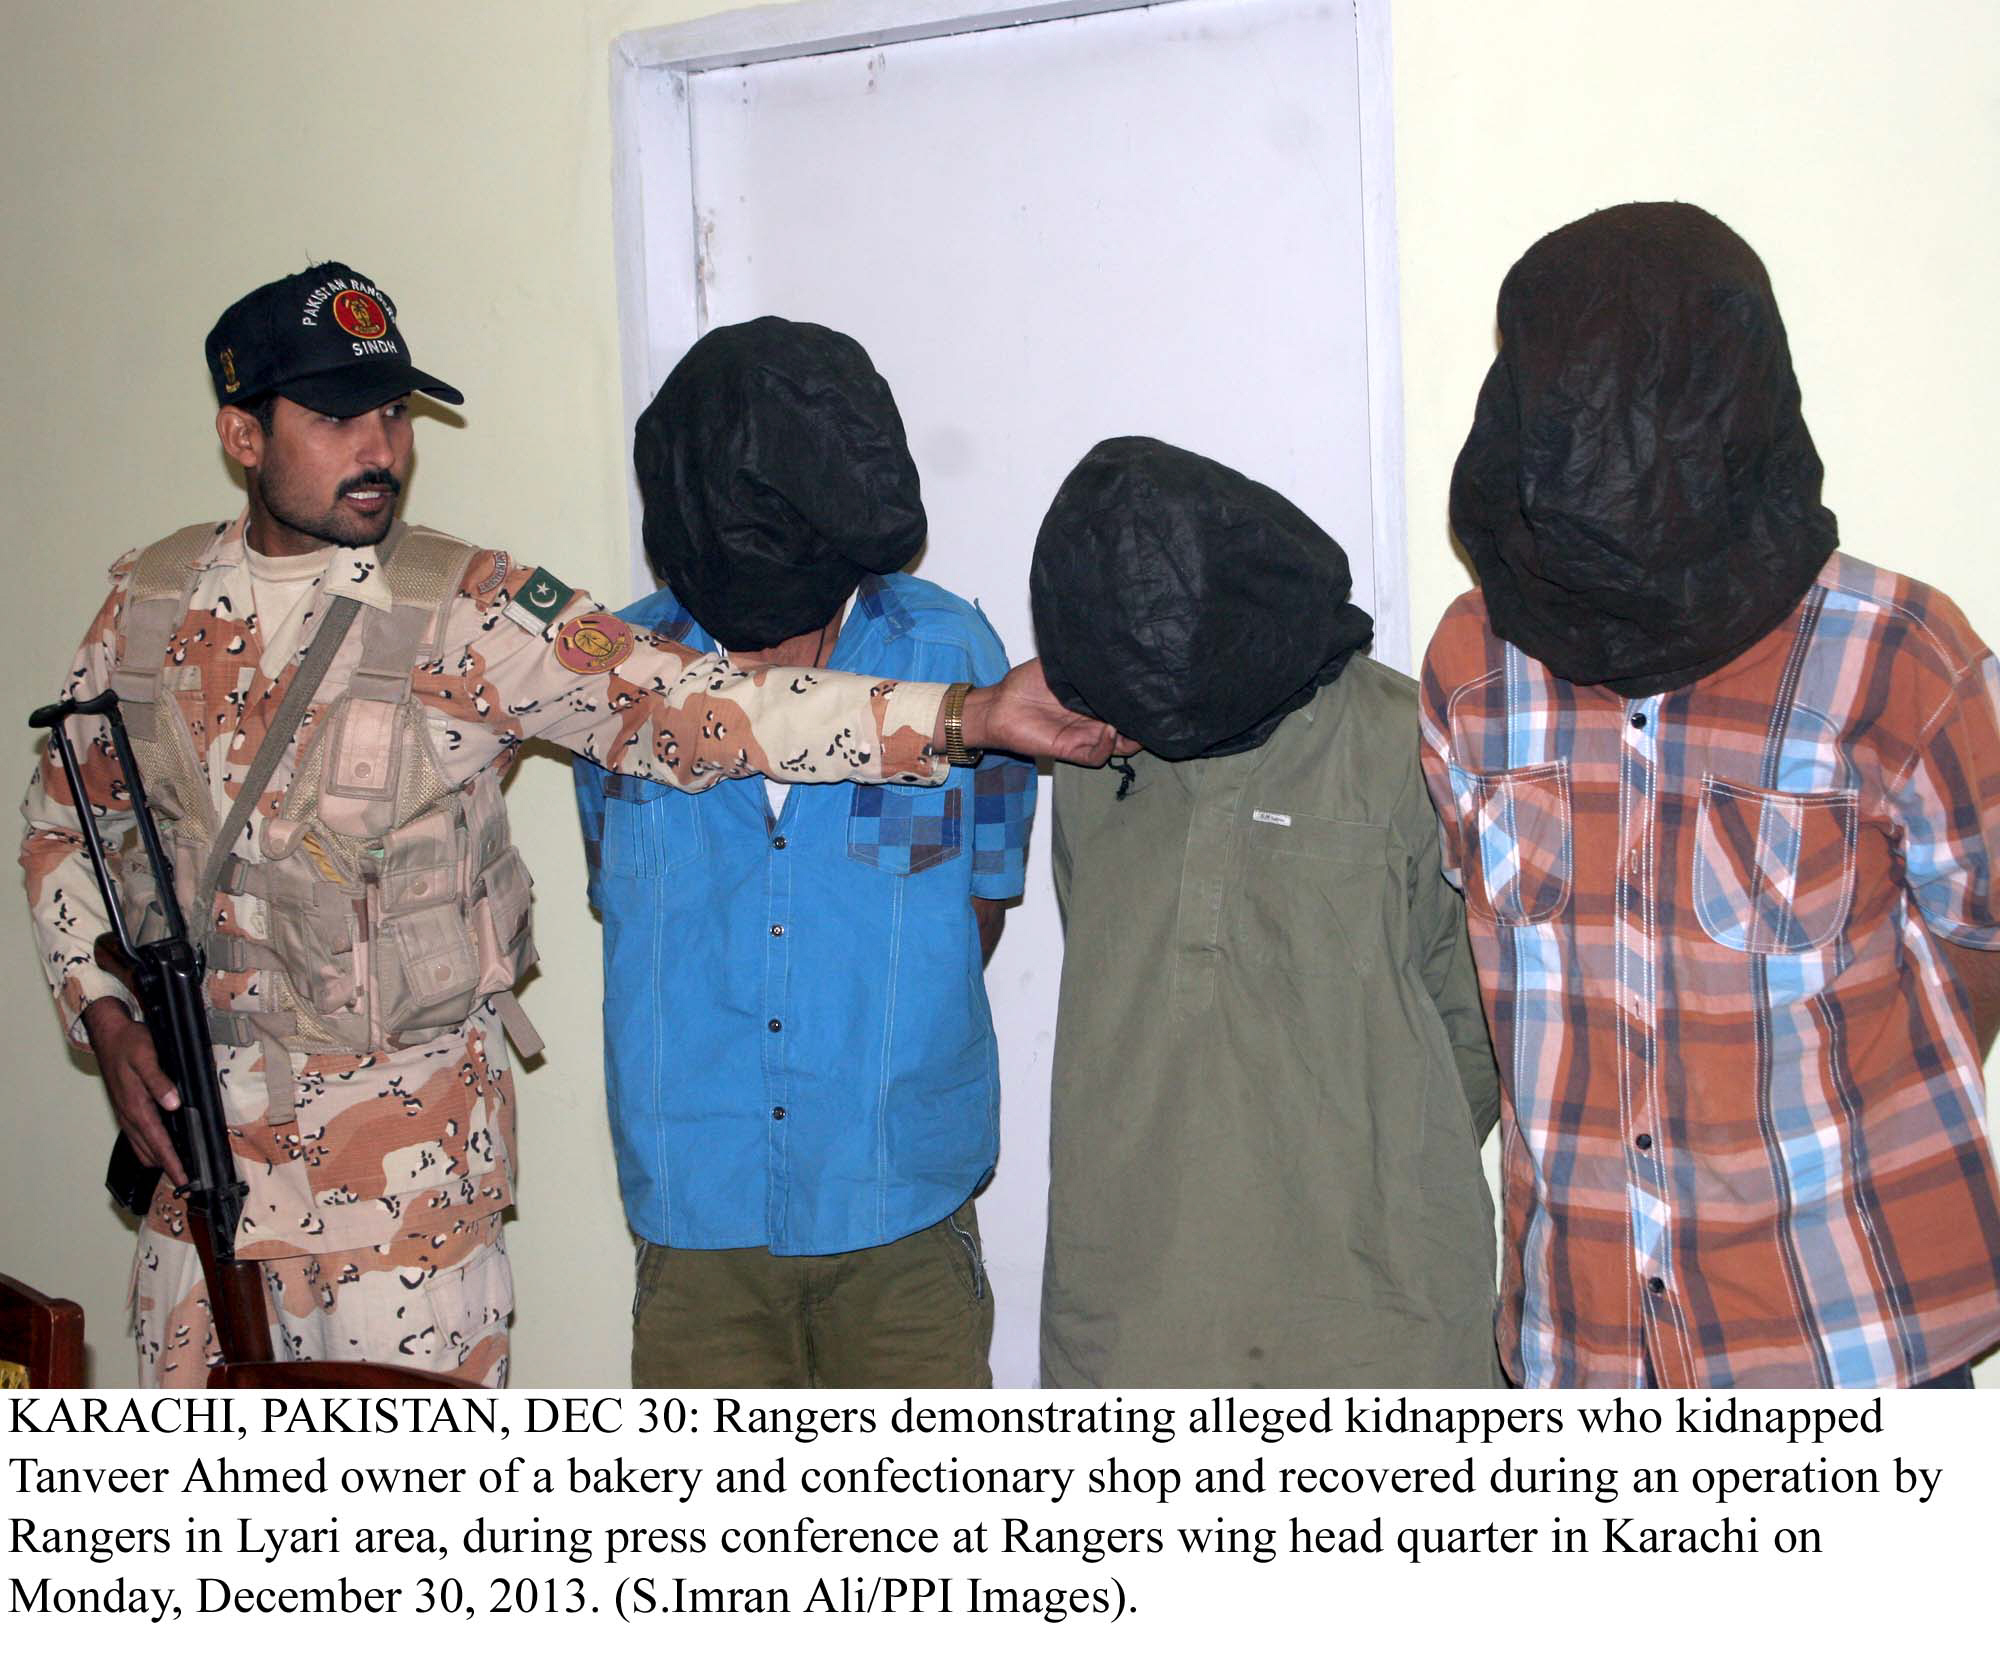 rangers-suspects-arrested-terrorists-target-killers-kidnappers-arrest-photo-ppi-2-3-2-2-2-2-2-2-2-2-2-3-3-3